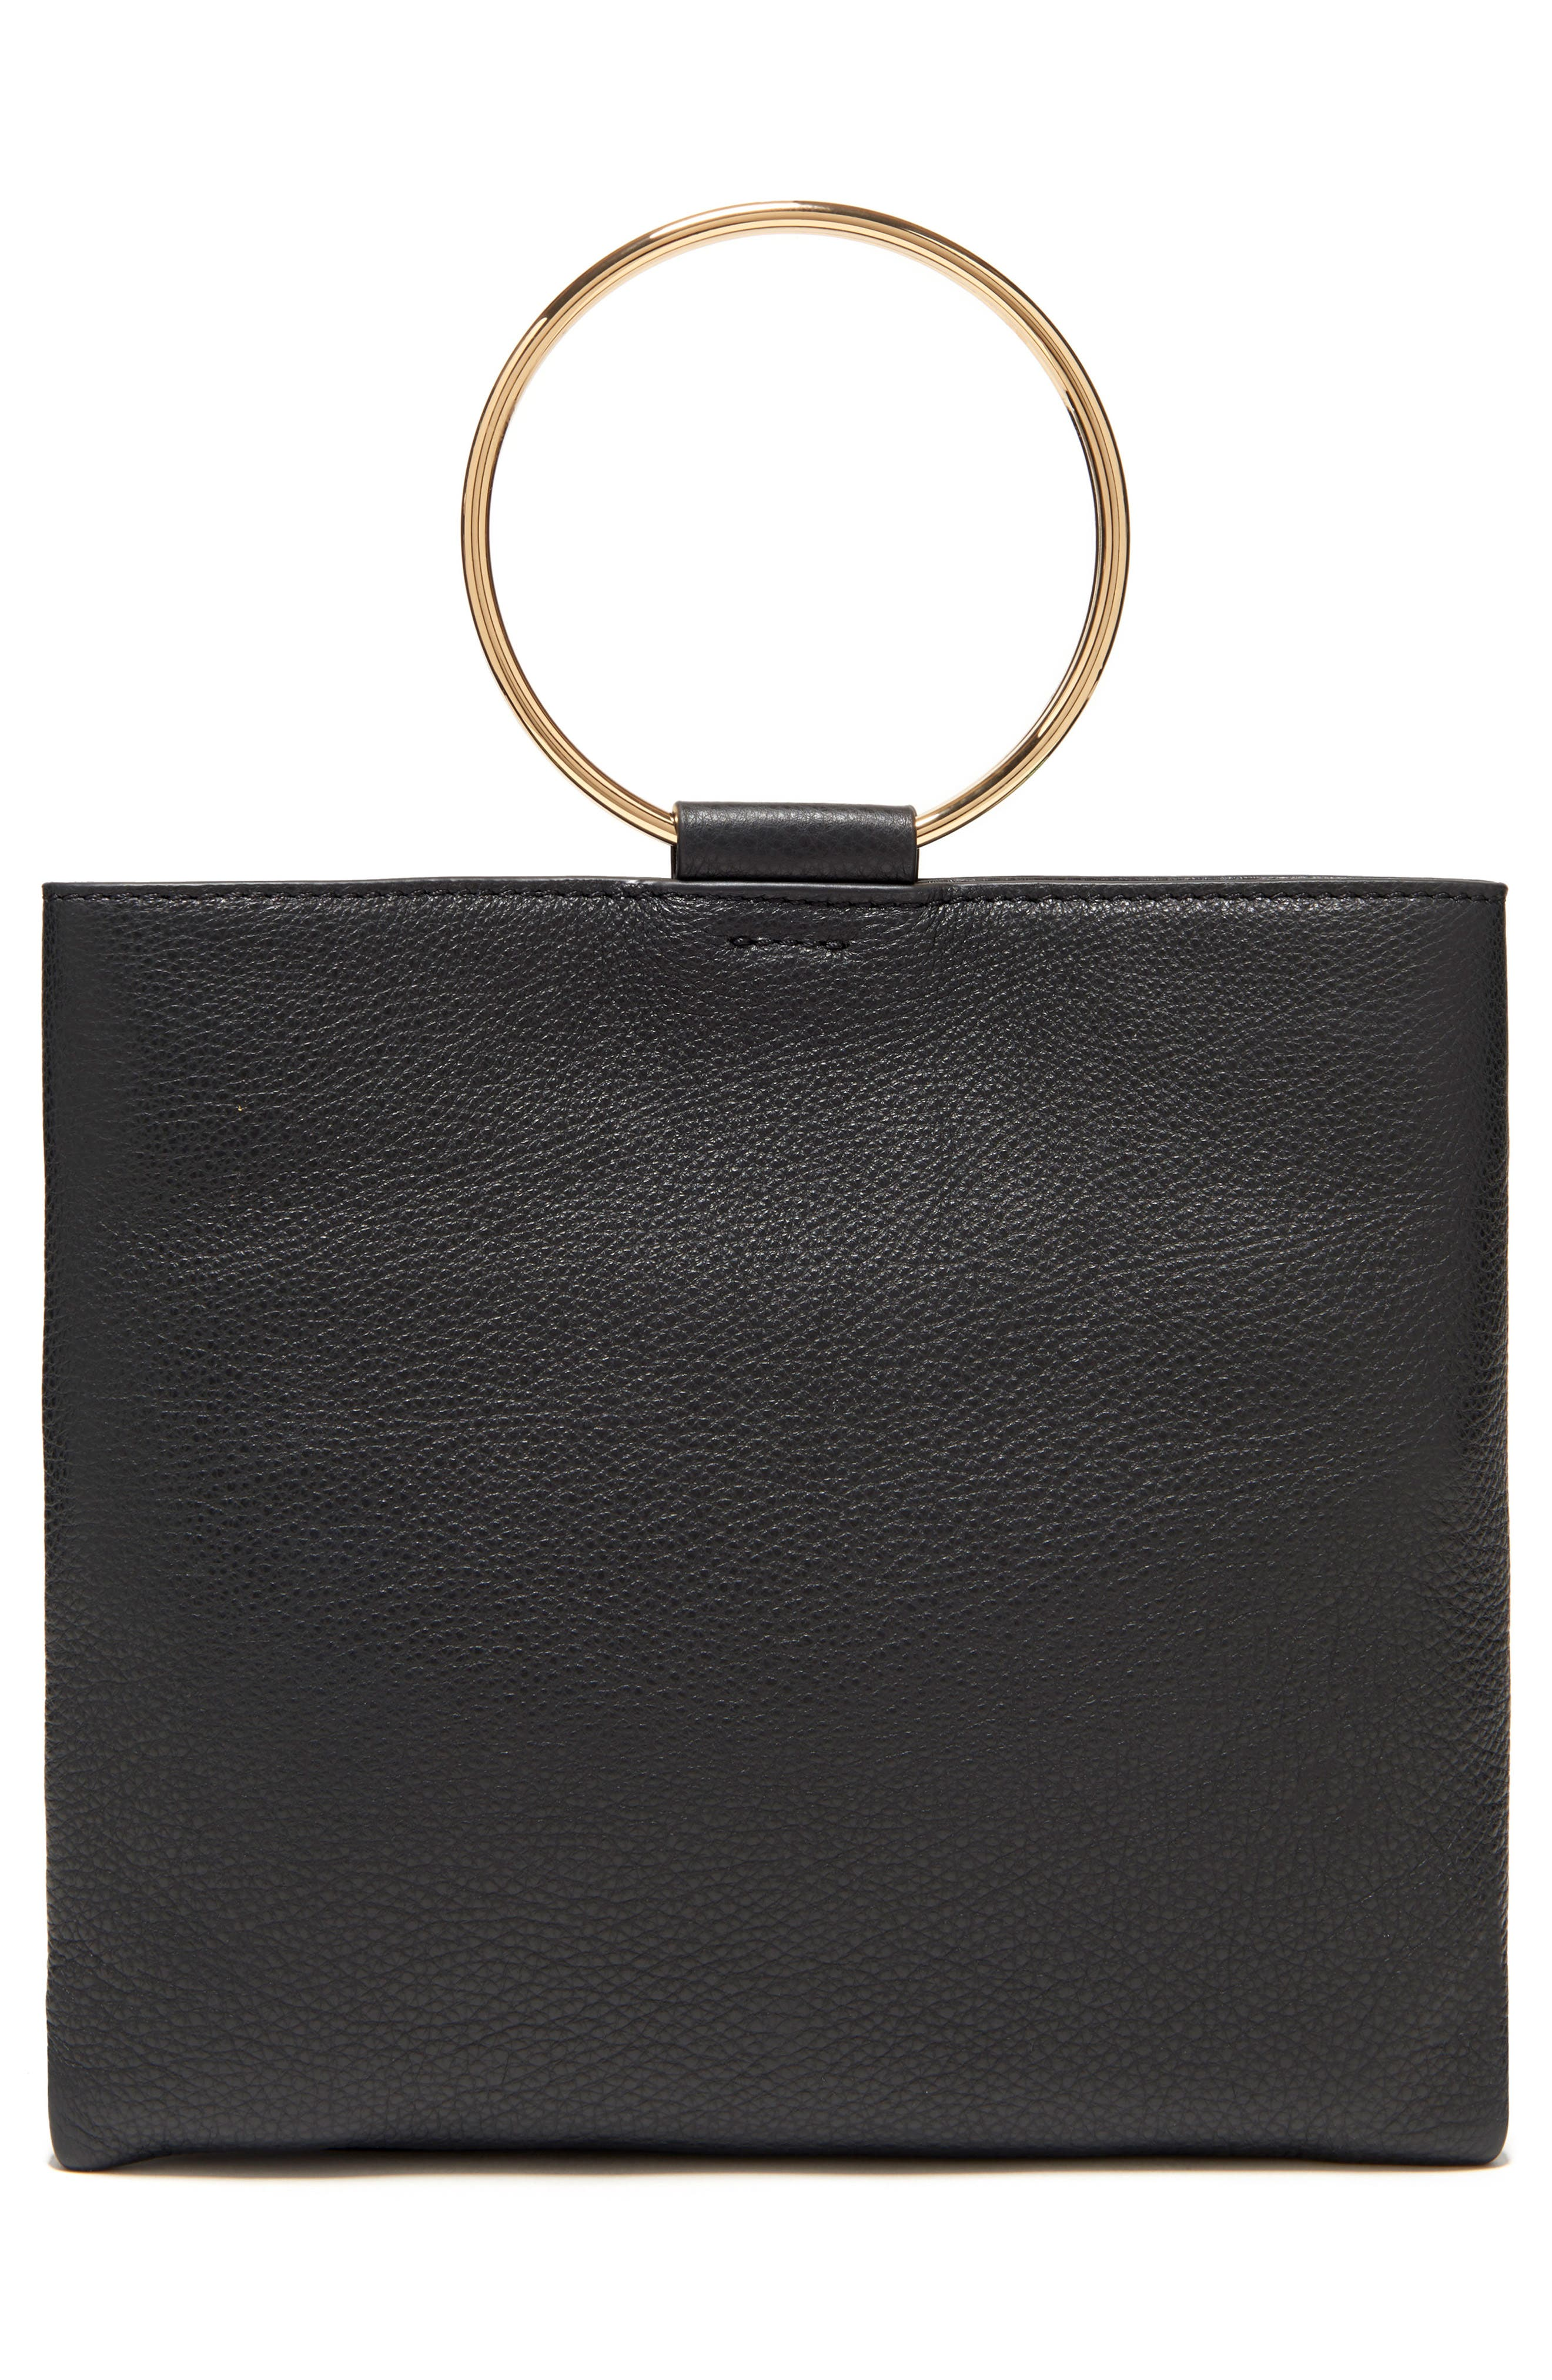 THACKER,                             Le Pouch Leather Ring Handle Crossbody Bag,                             Alternate thumbnail 2, color,                             001